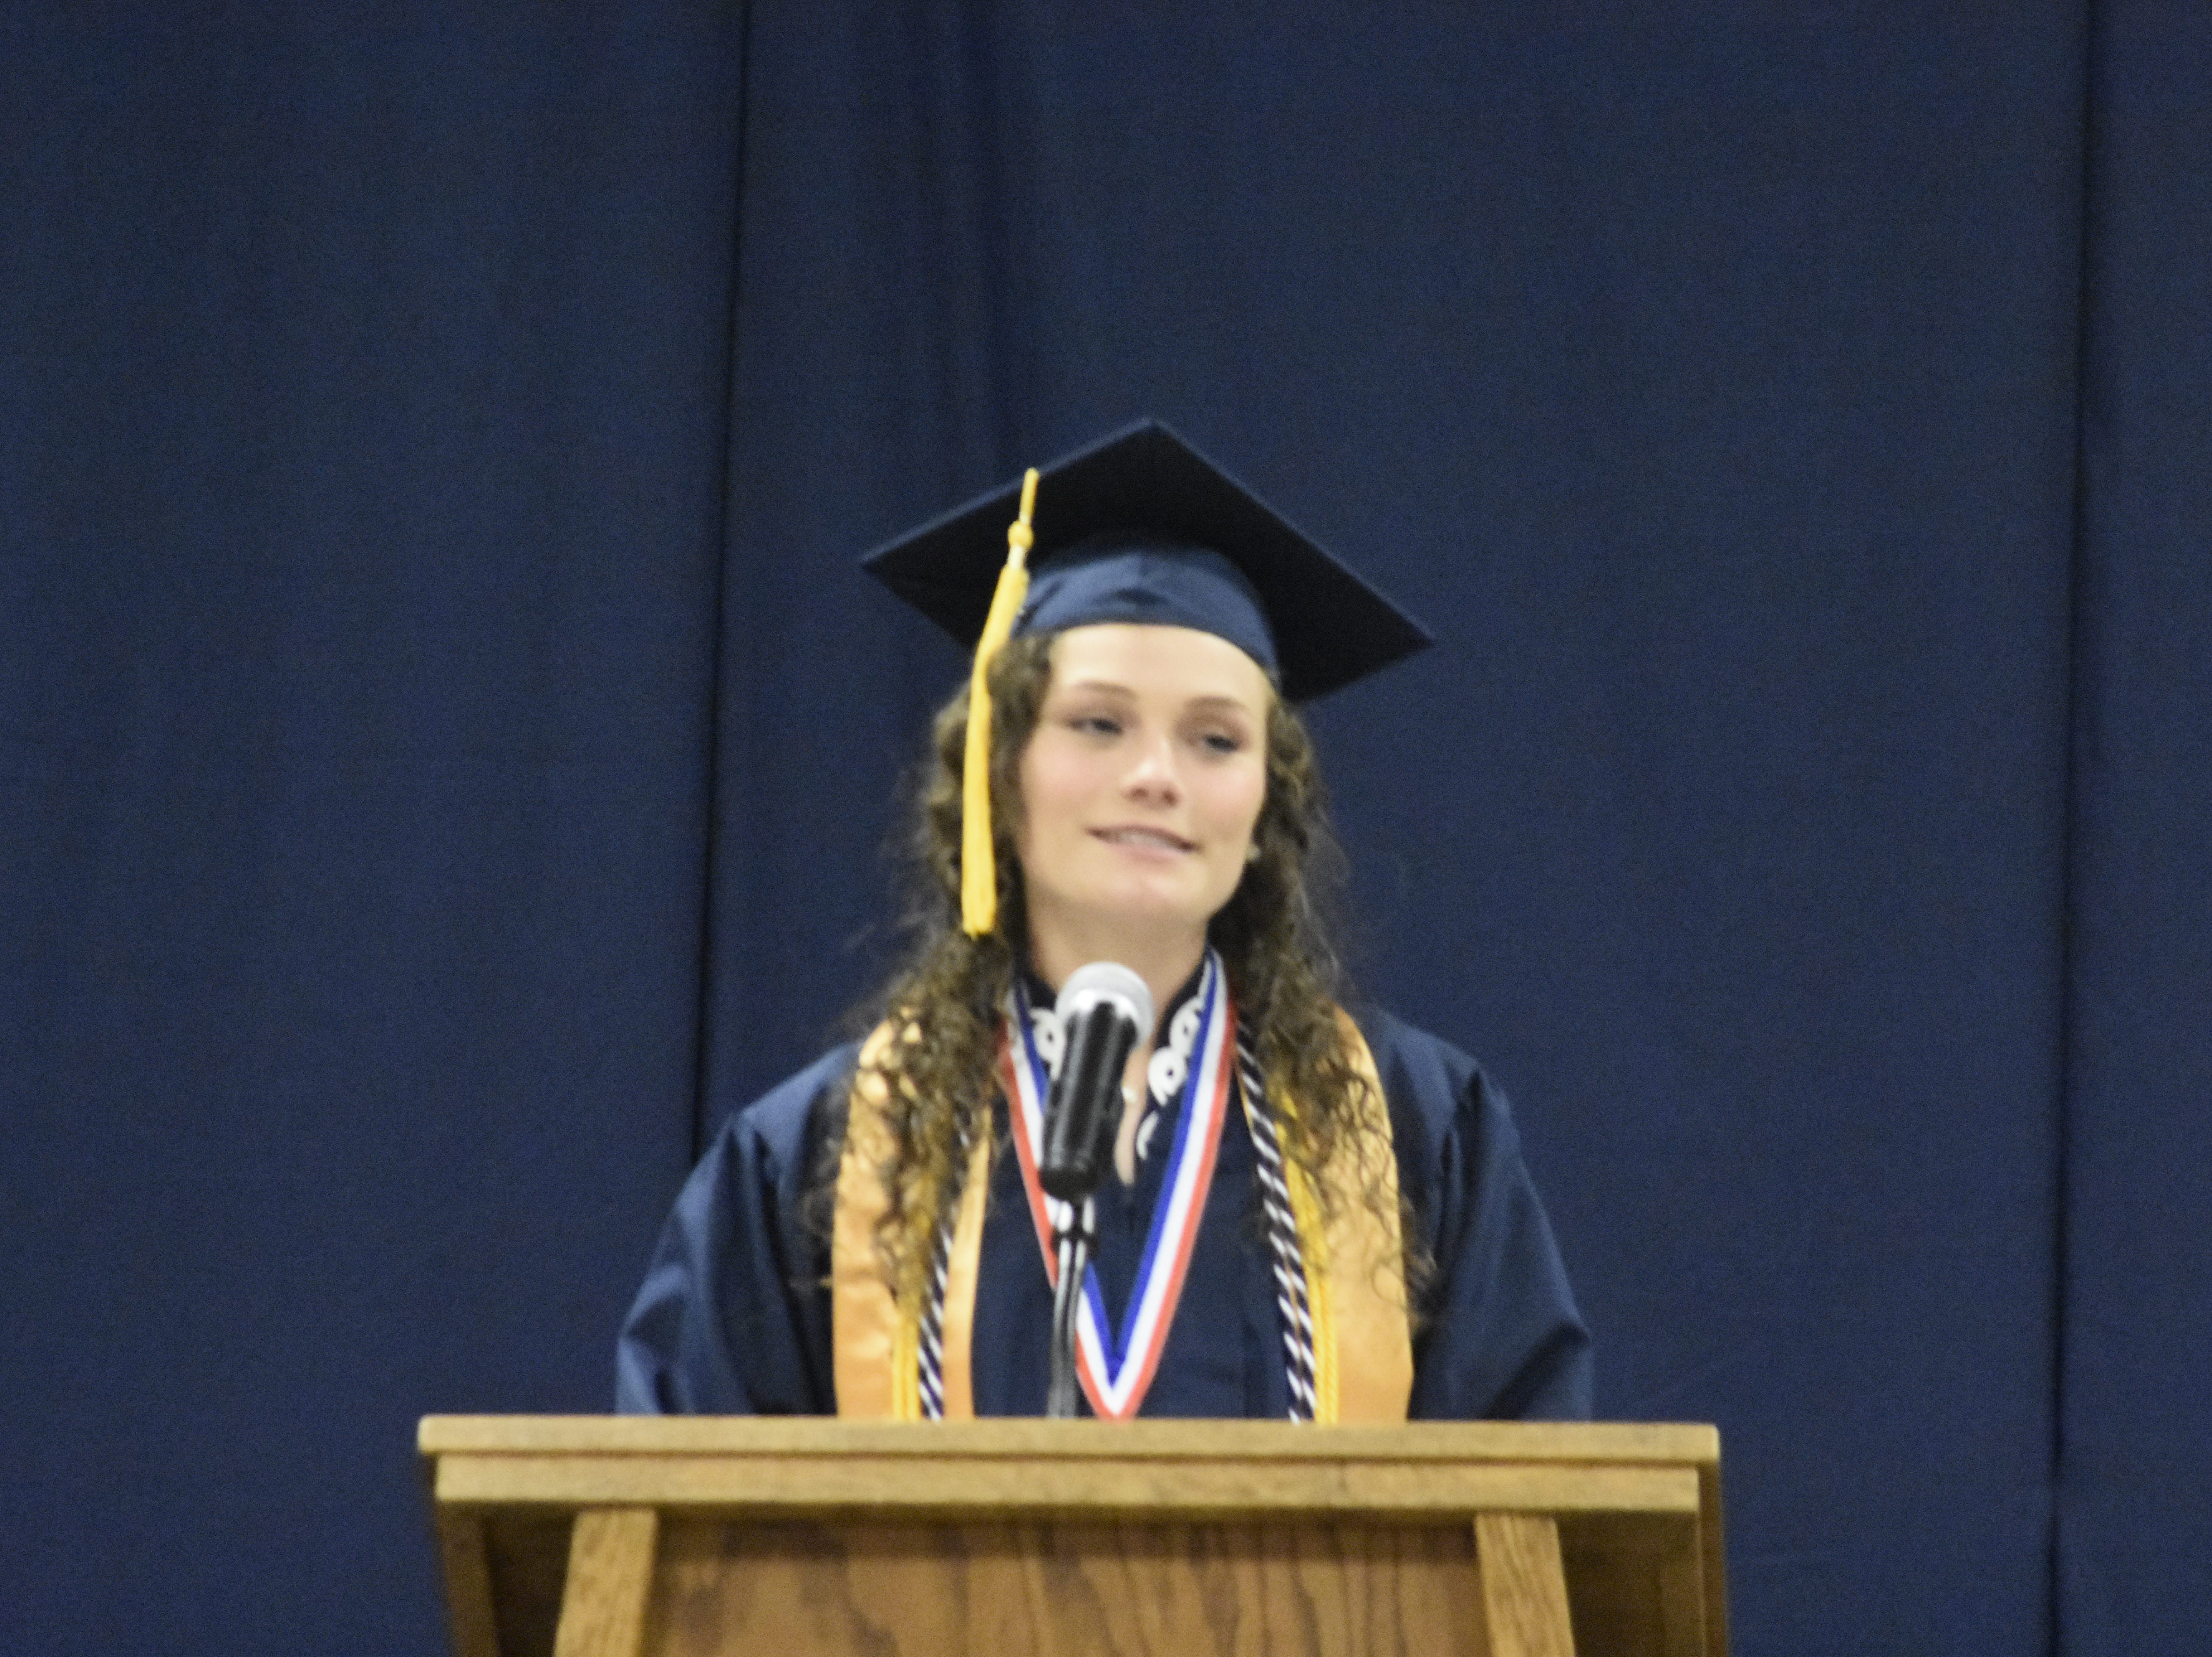 Valedictorian Kylah Kivette gives her address at Pleasant View Christian School's graduation on Monday, May 13.